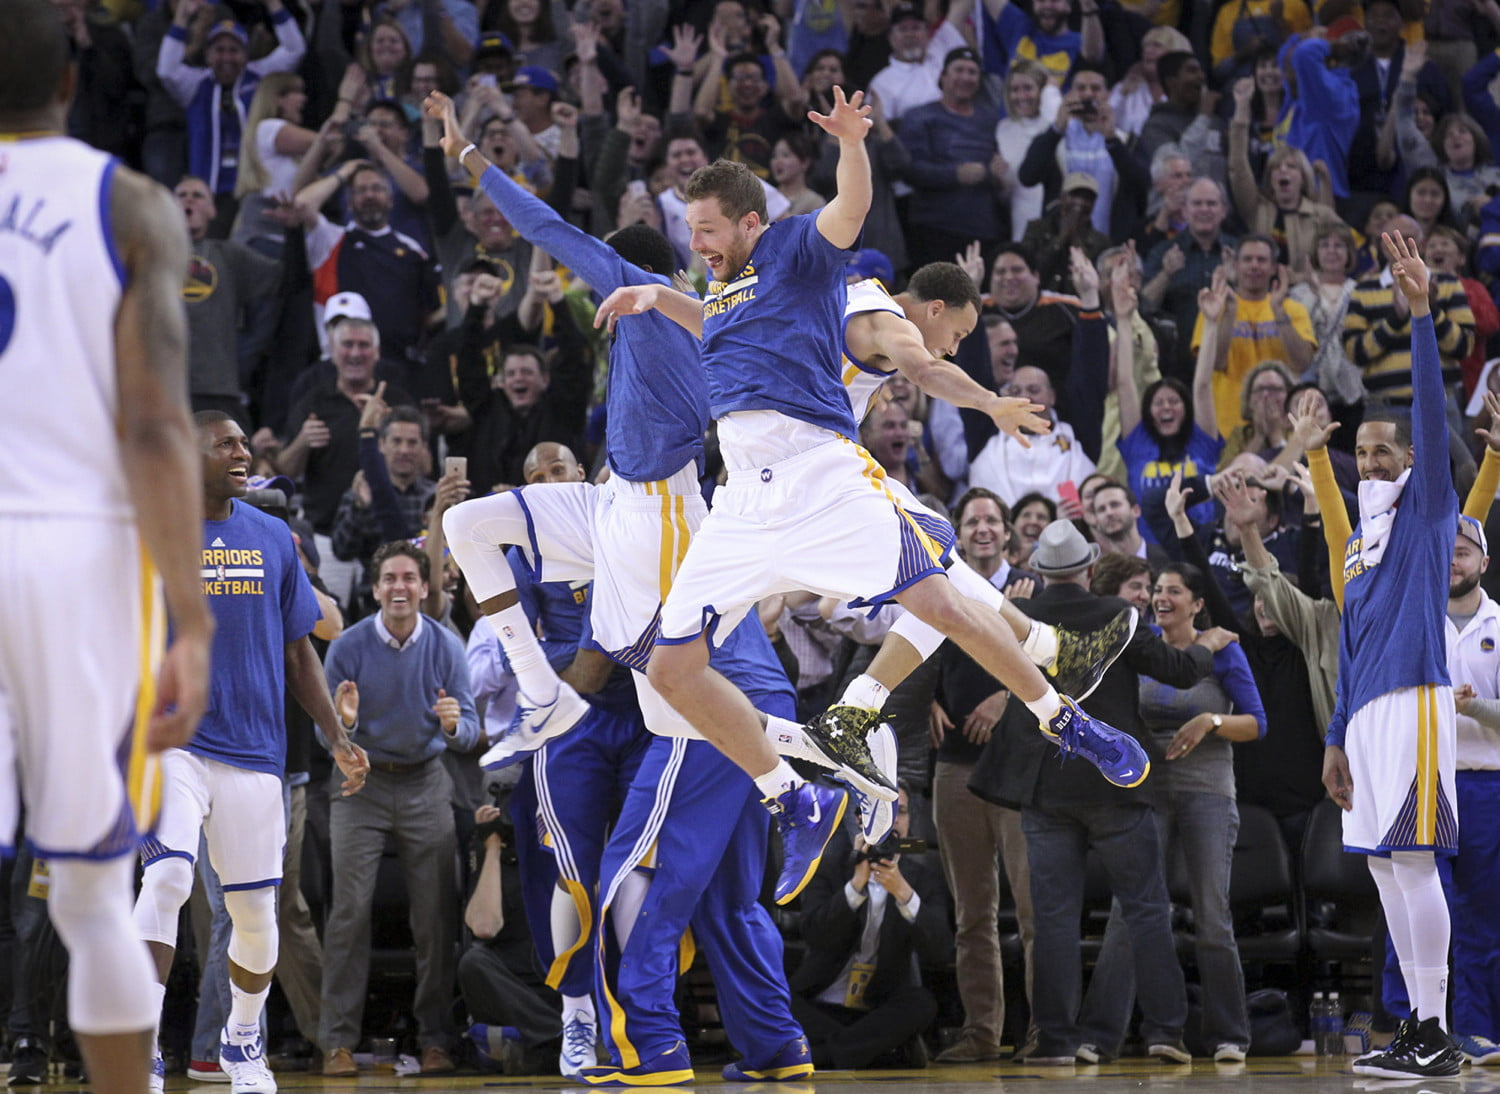 nba photographer jack arent holiday  lee and curry reacts during a timeout